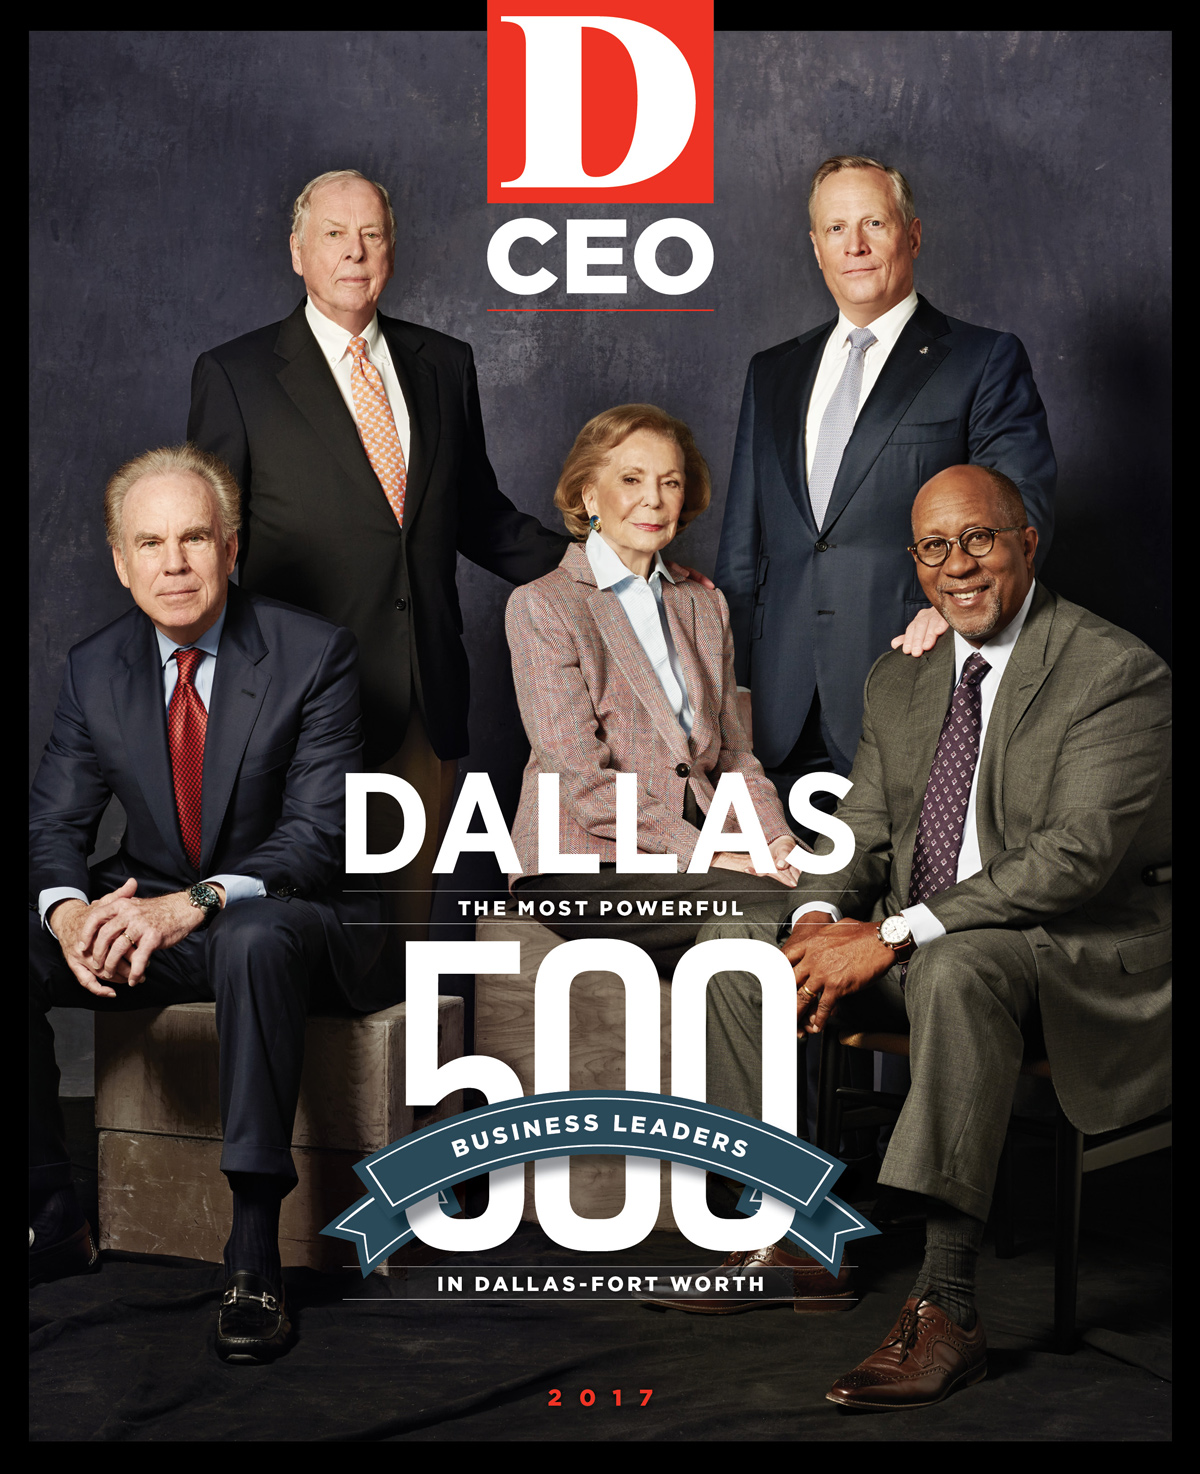 Dallas 500 2017 cover